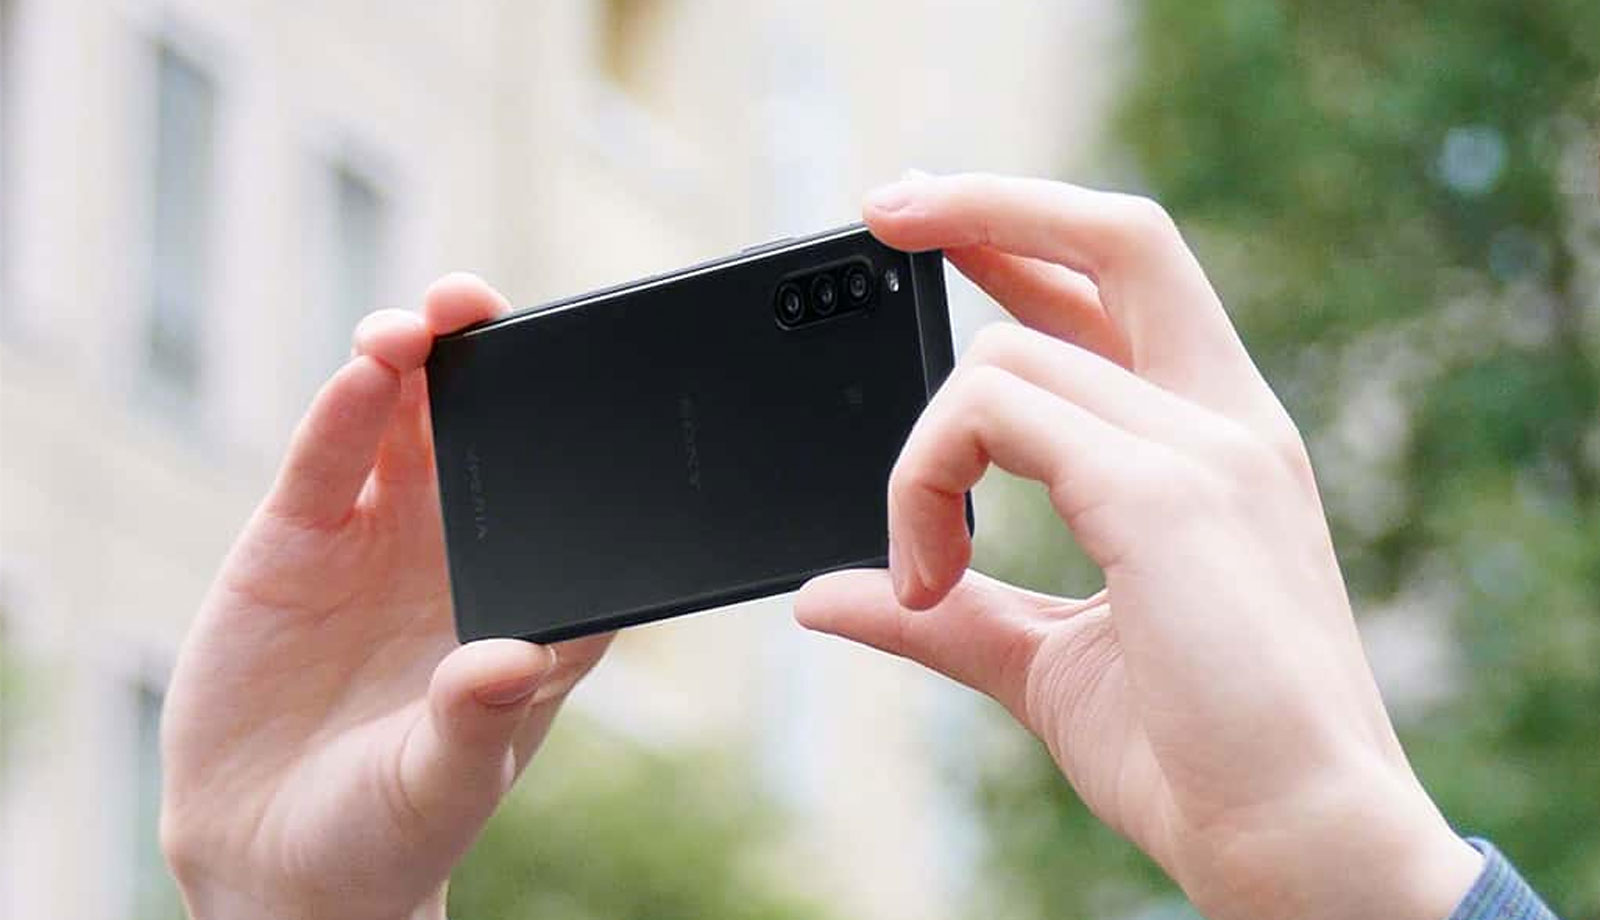 hands on Xperia 10, shooting